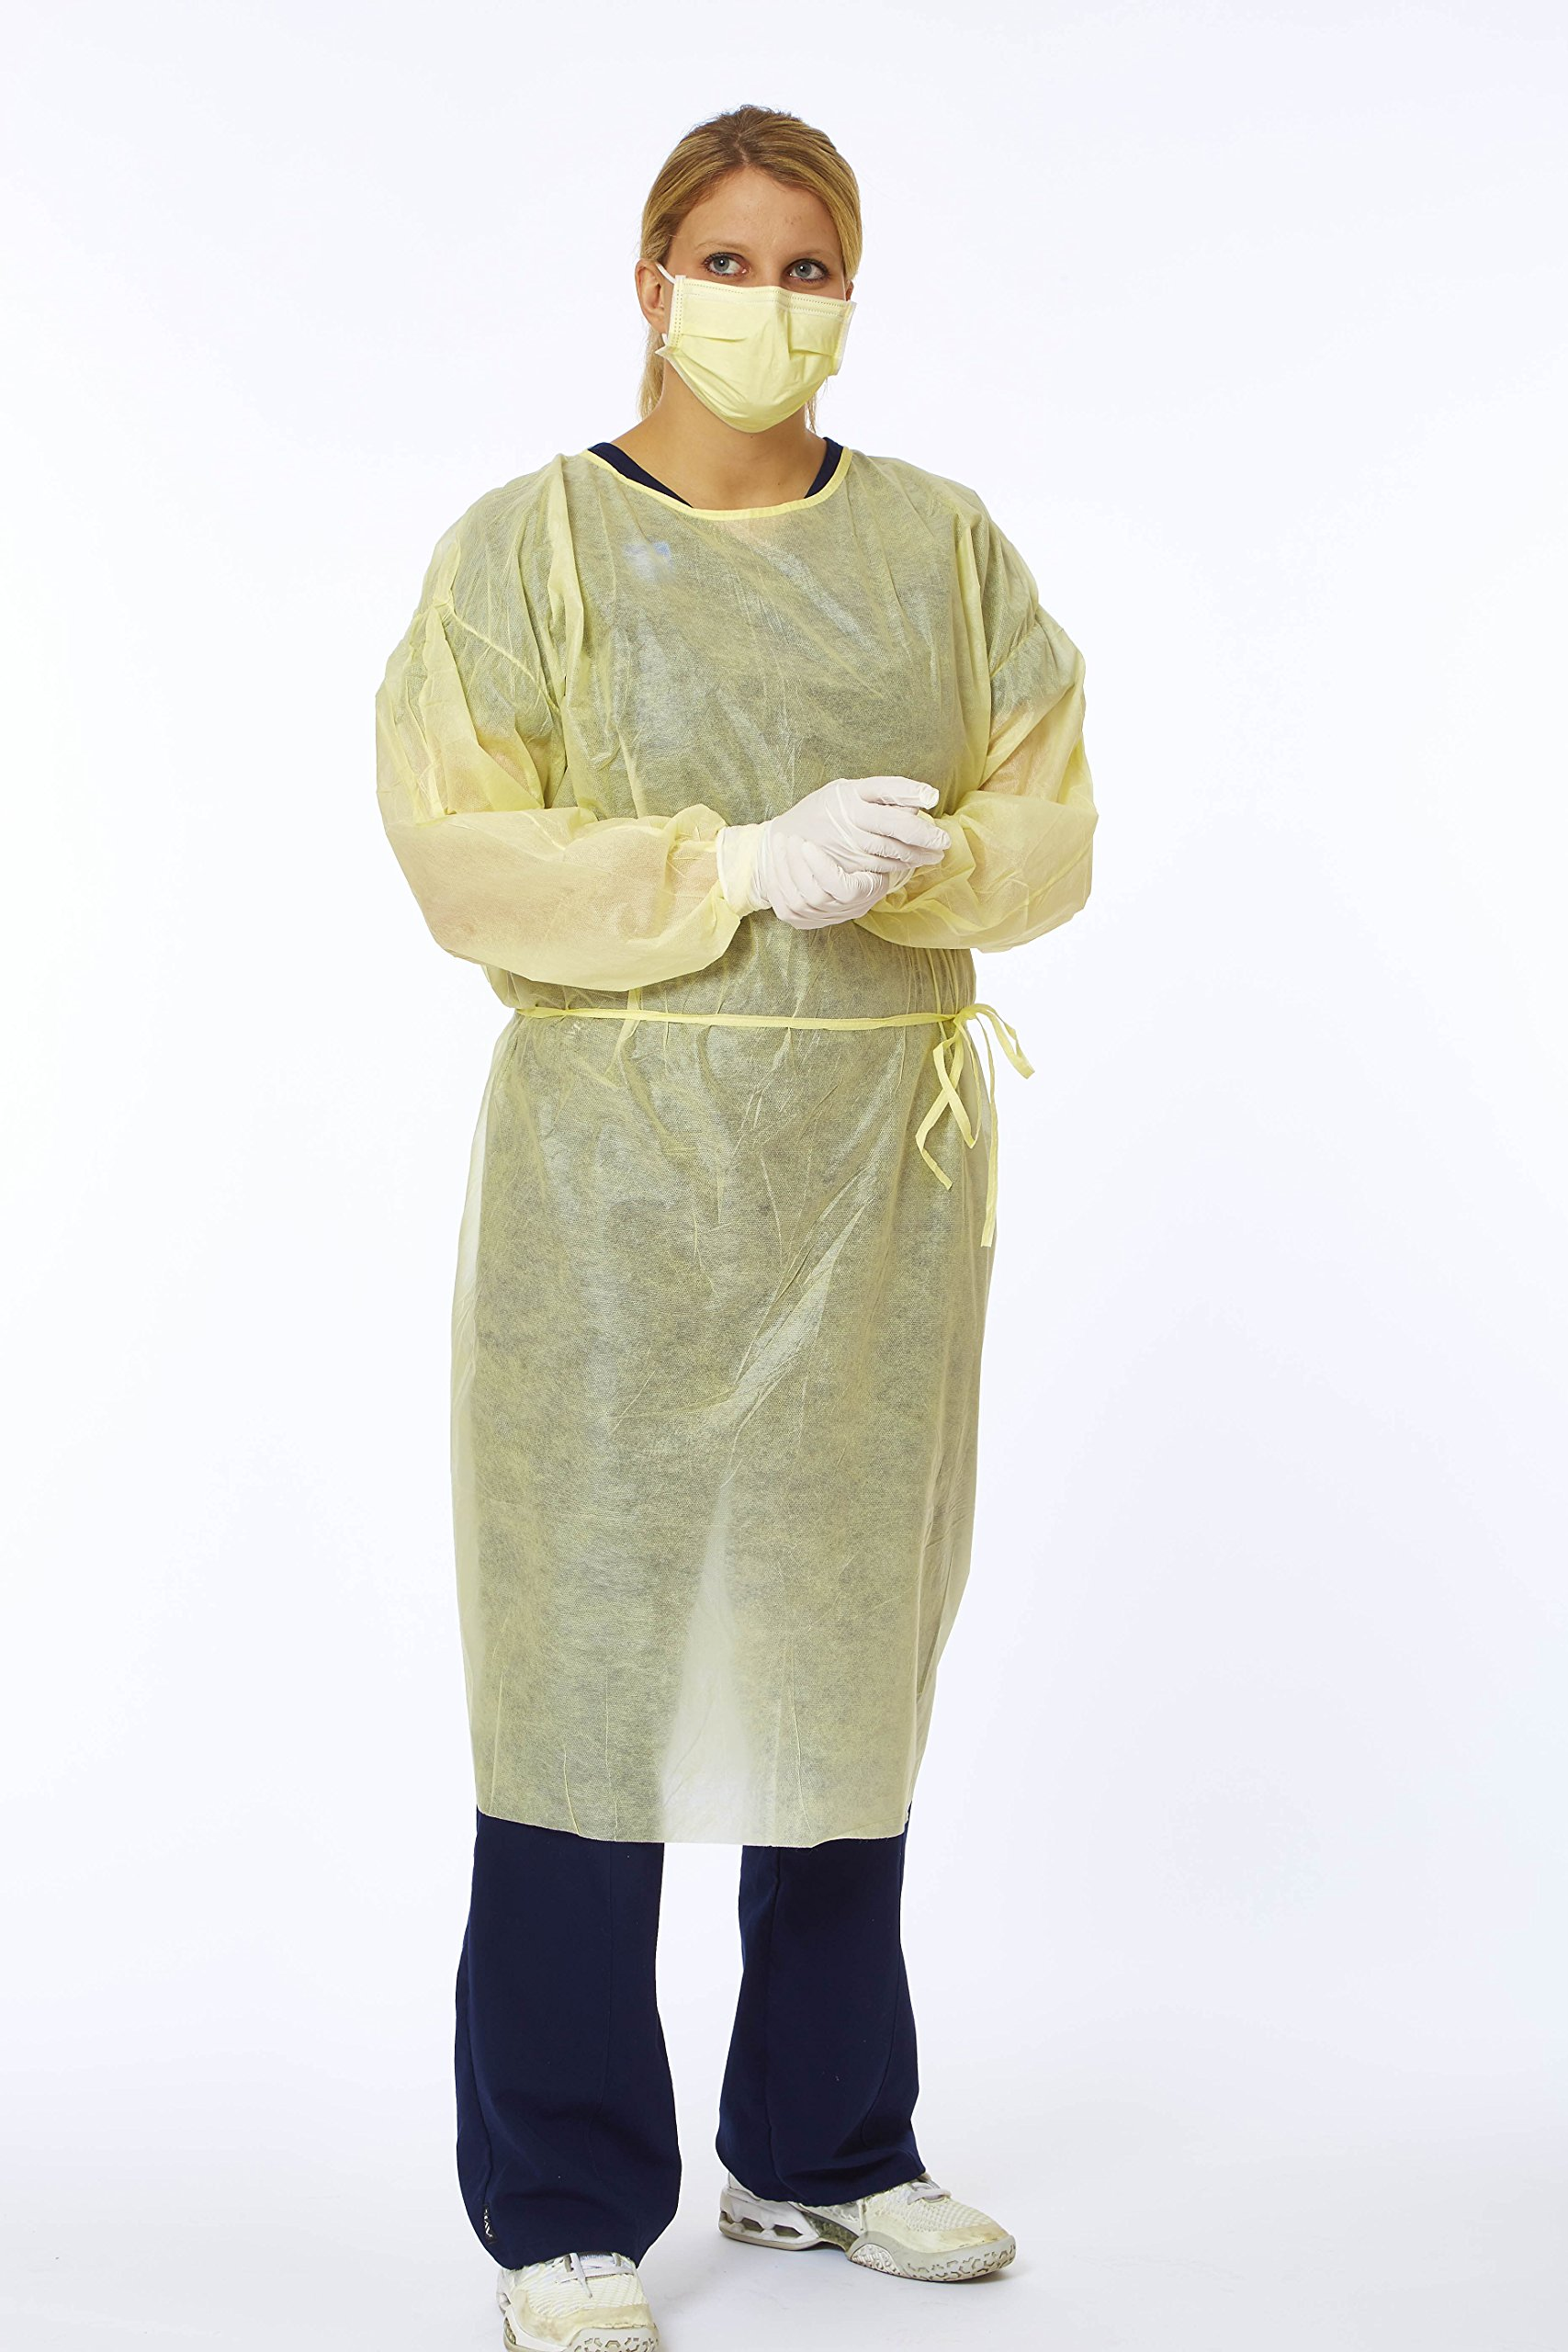 Medline Disposable Lightweight Fluid Resistant Isolation Gowns, Yellow, X-Large, (50 Count)